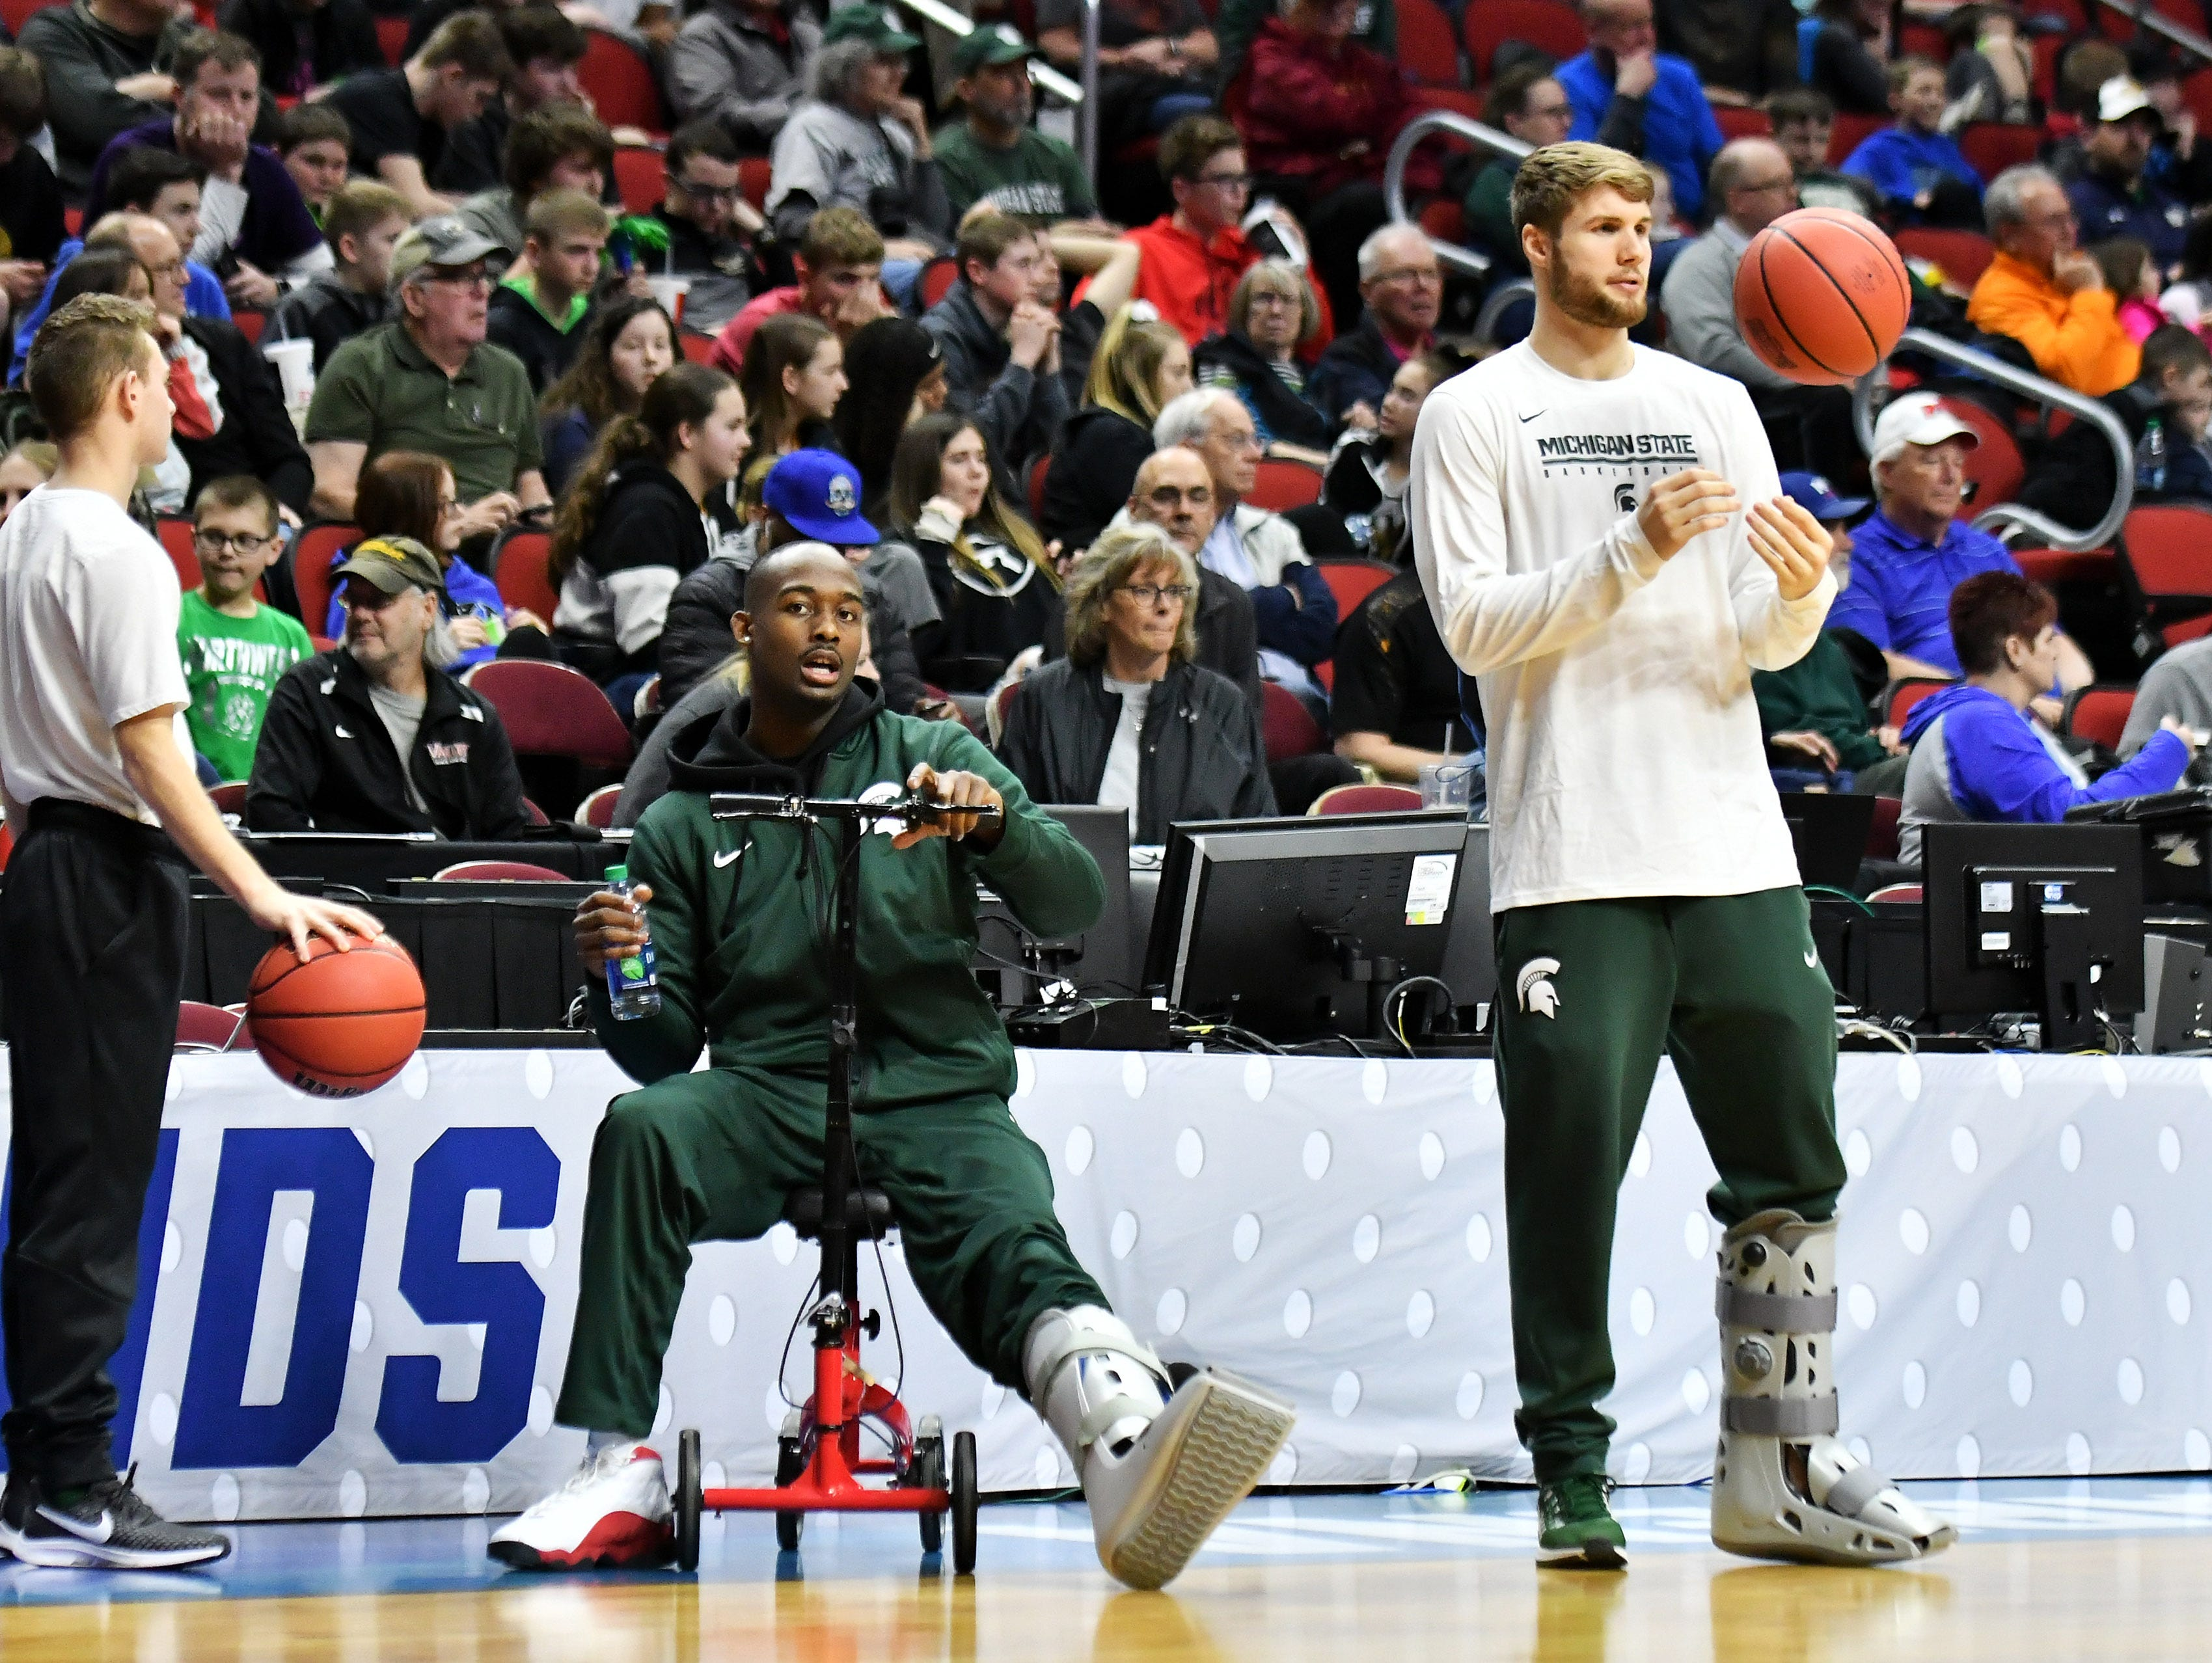 MSU's ailing Kyle Ahrens gets good news: He'll get to walk at his wedding